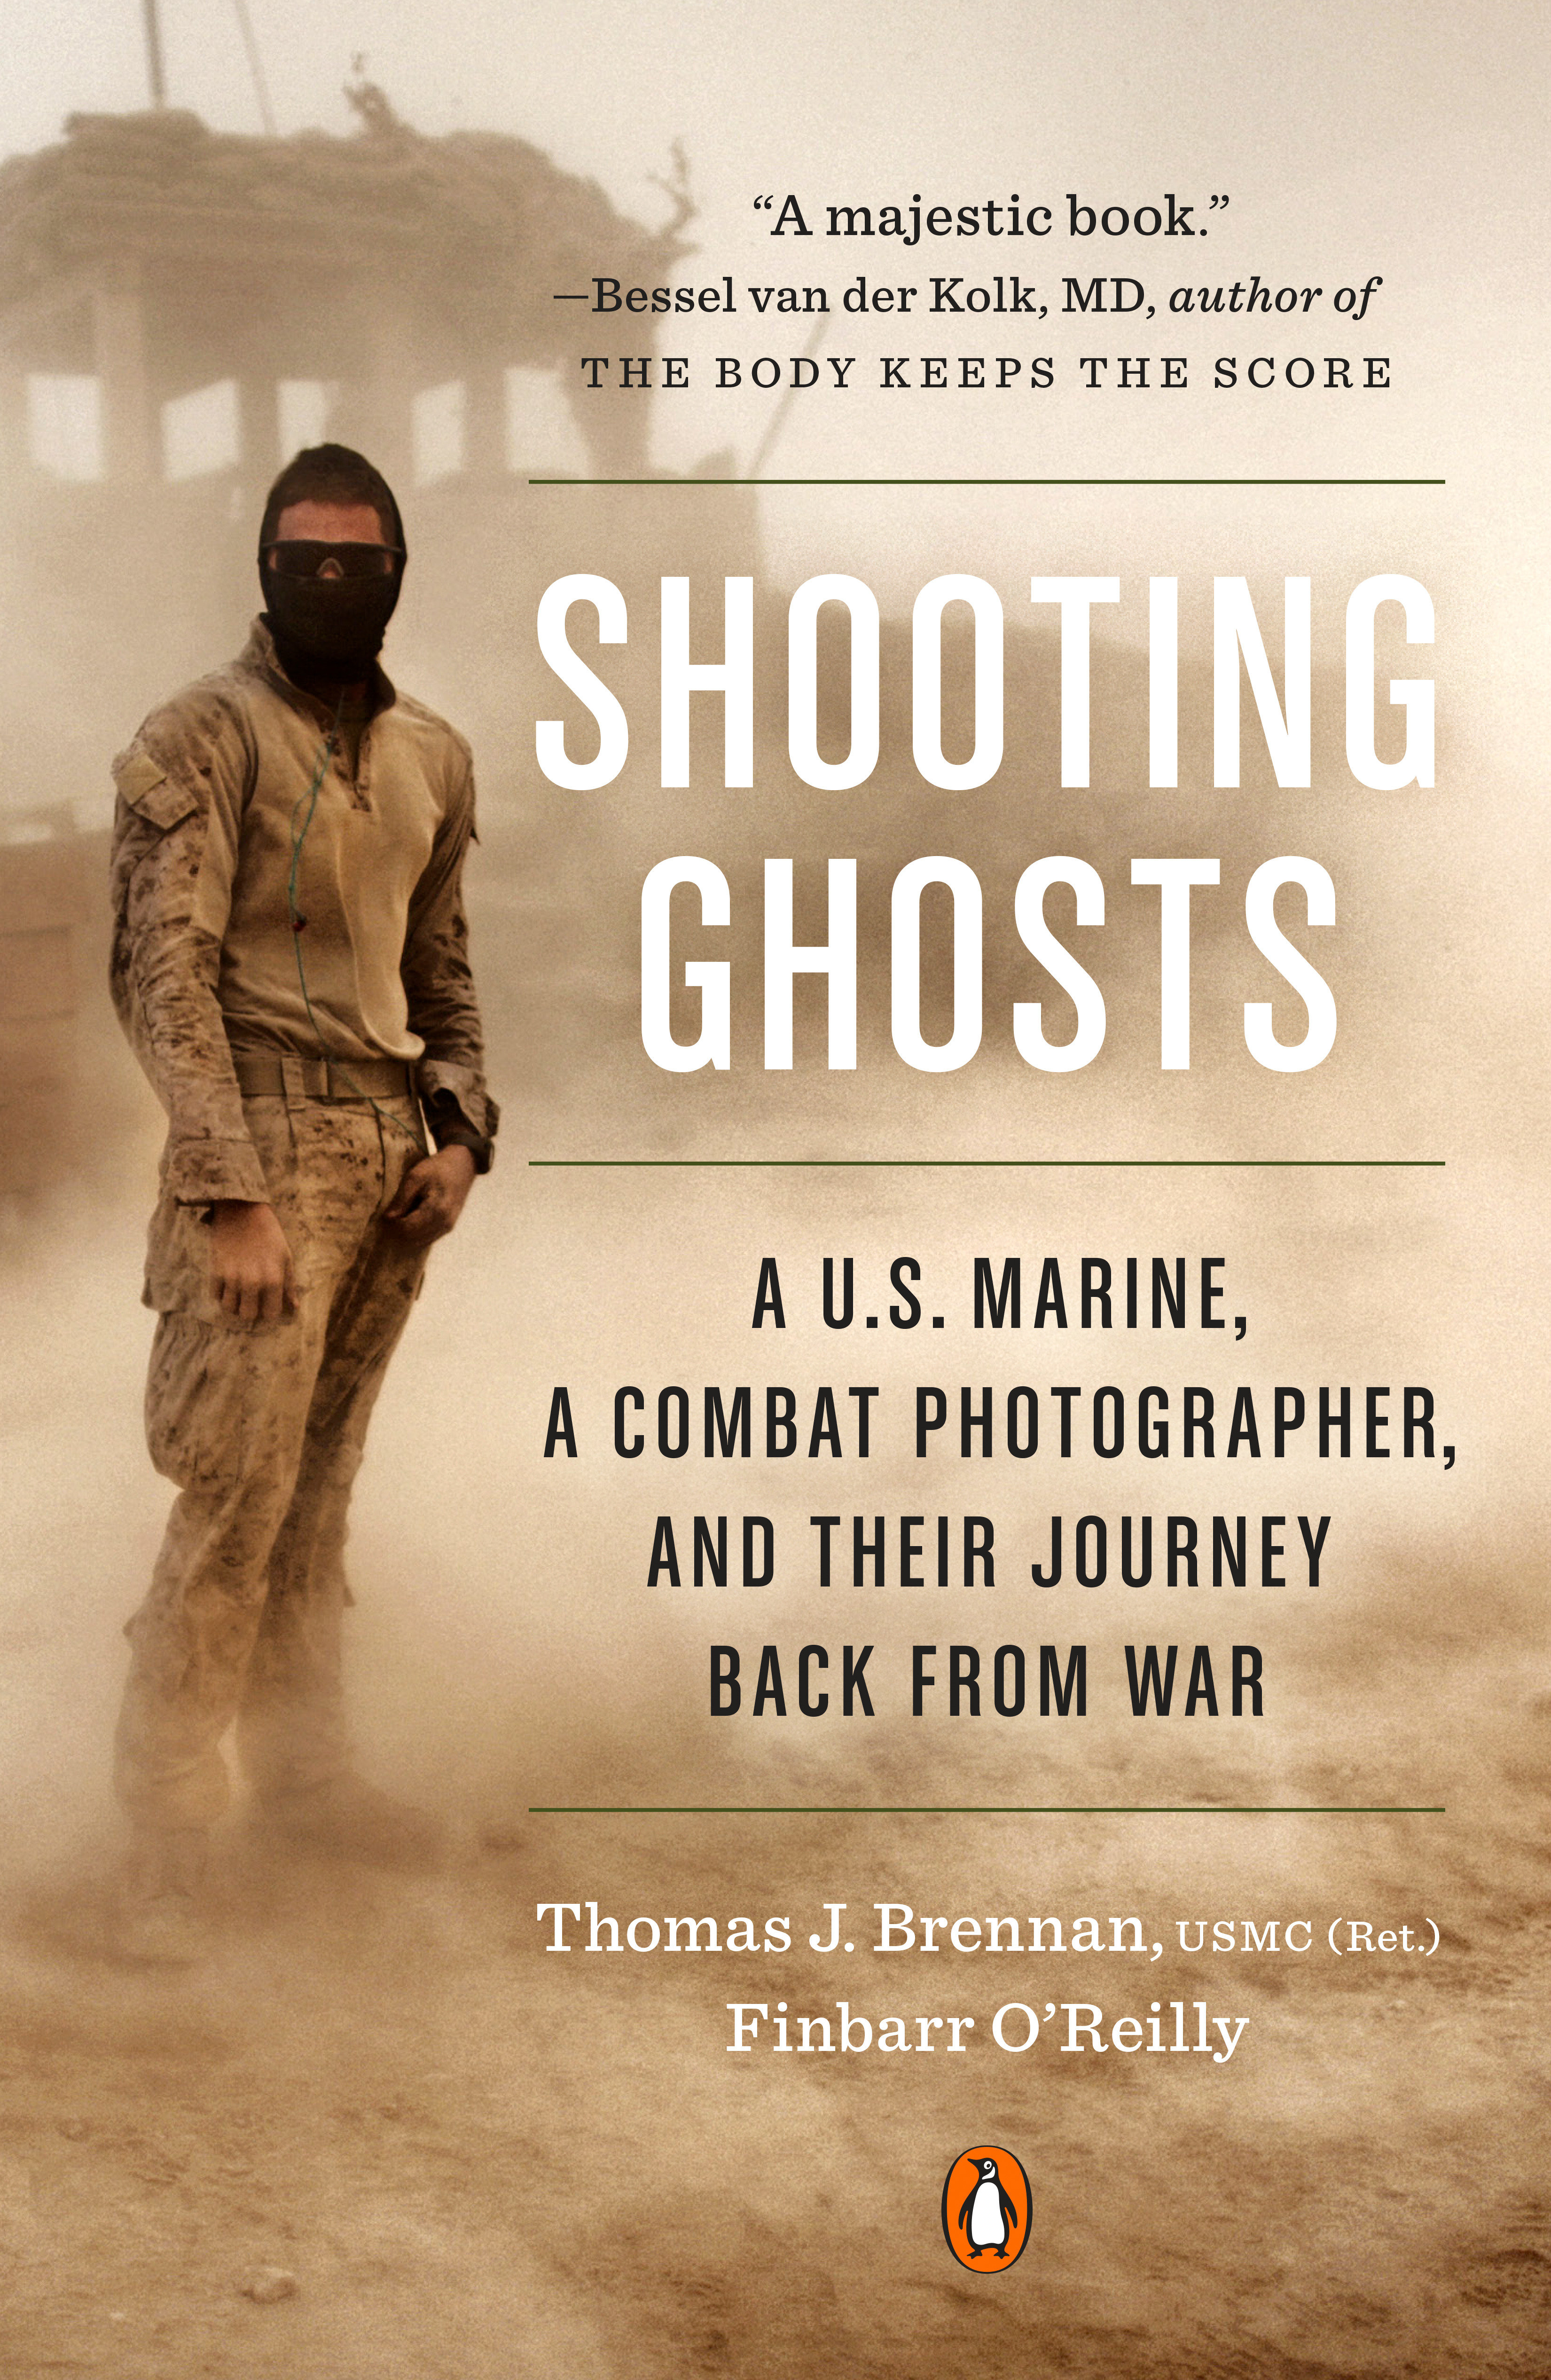 Shooting Ghosts A U.S. Marine, a Combat Photographer, and Their Journey Back from War